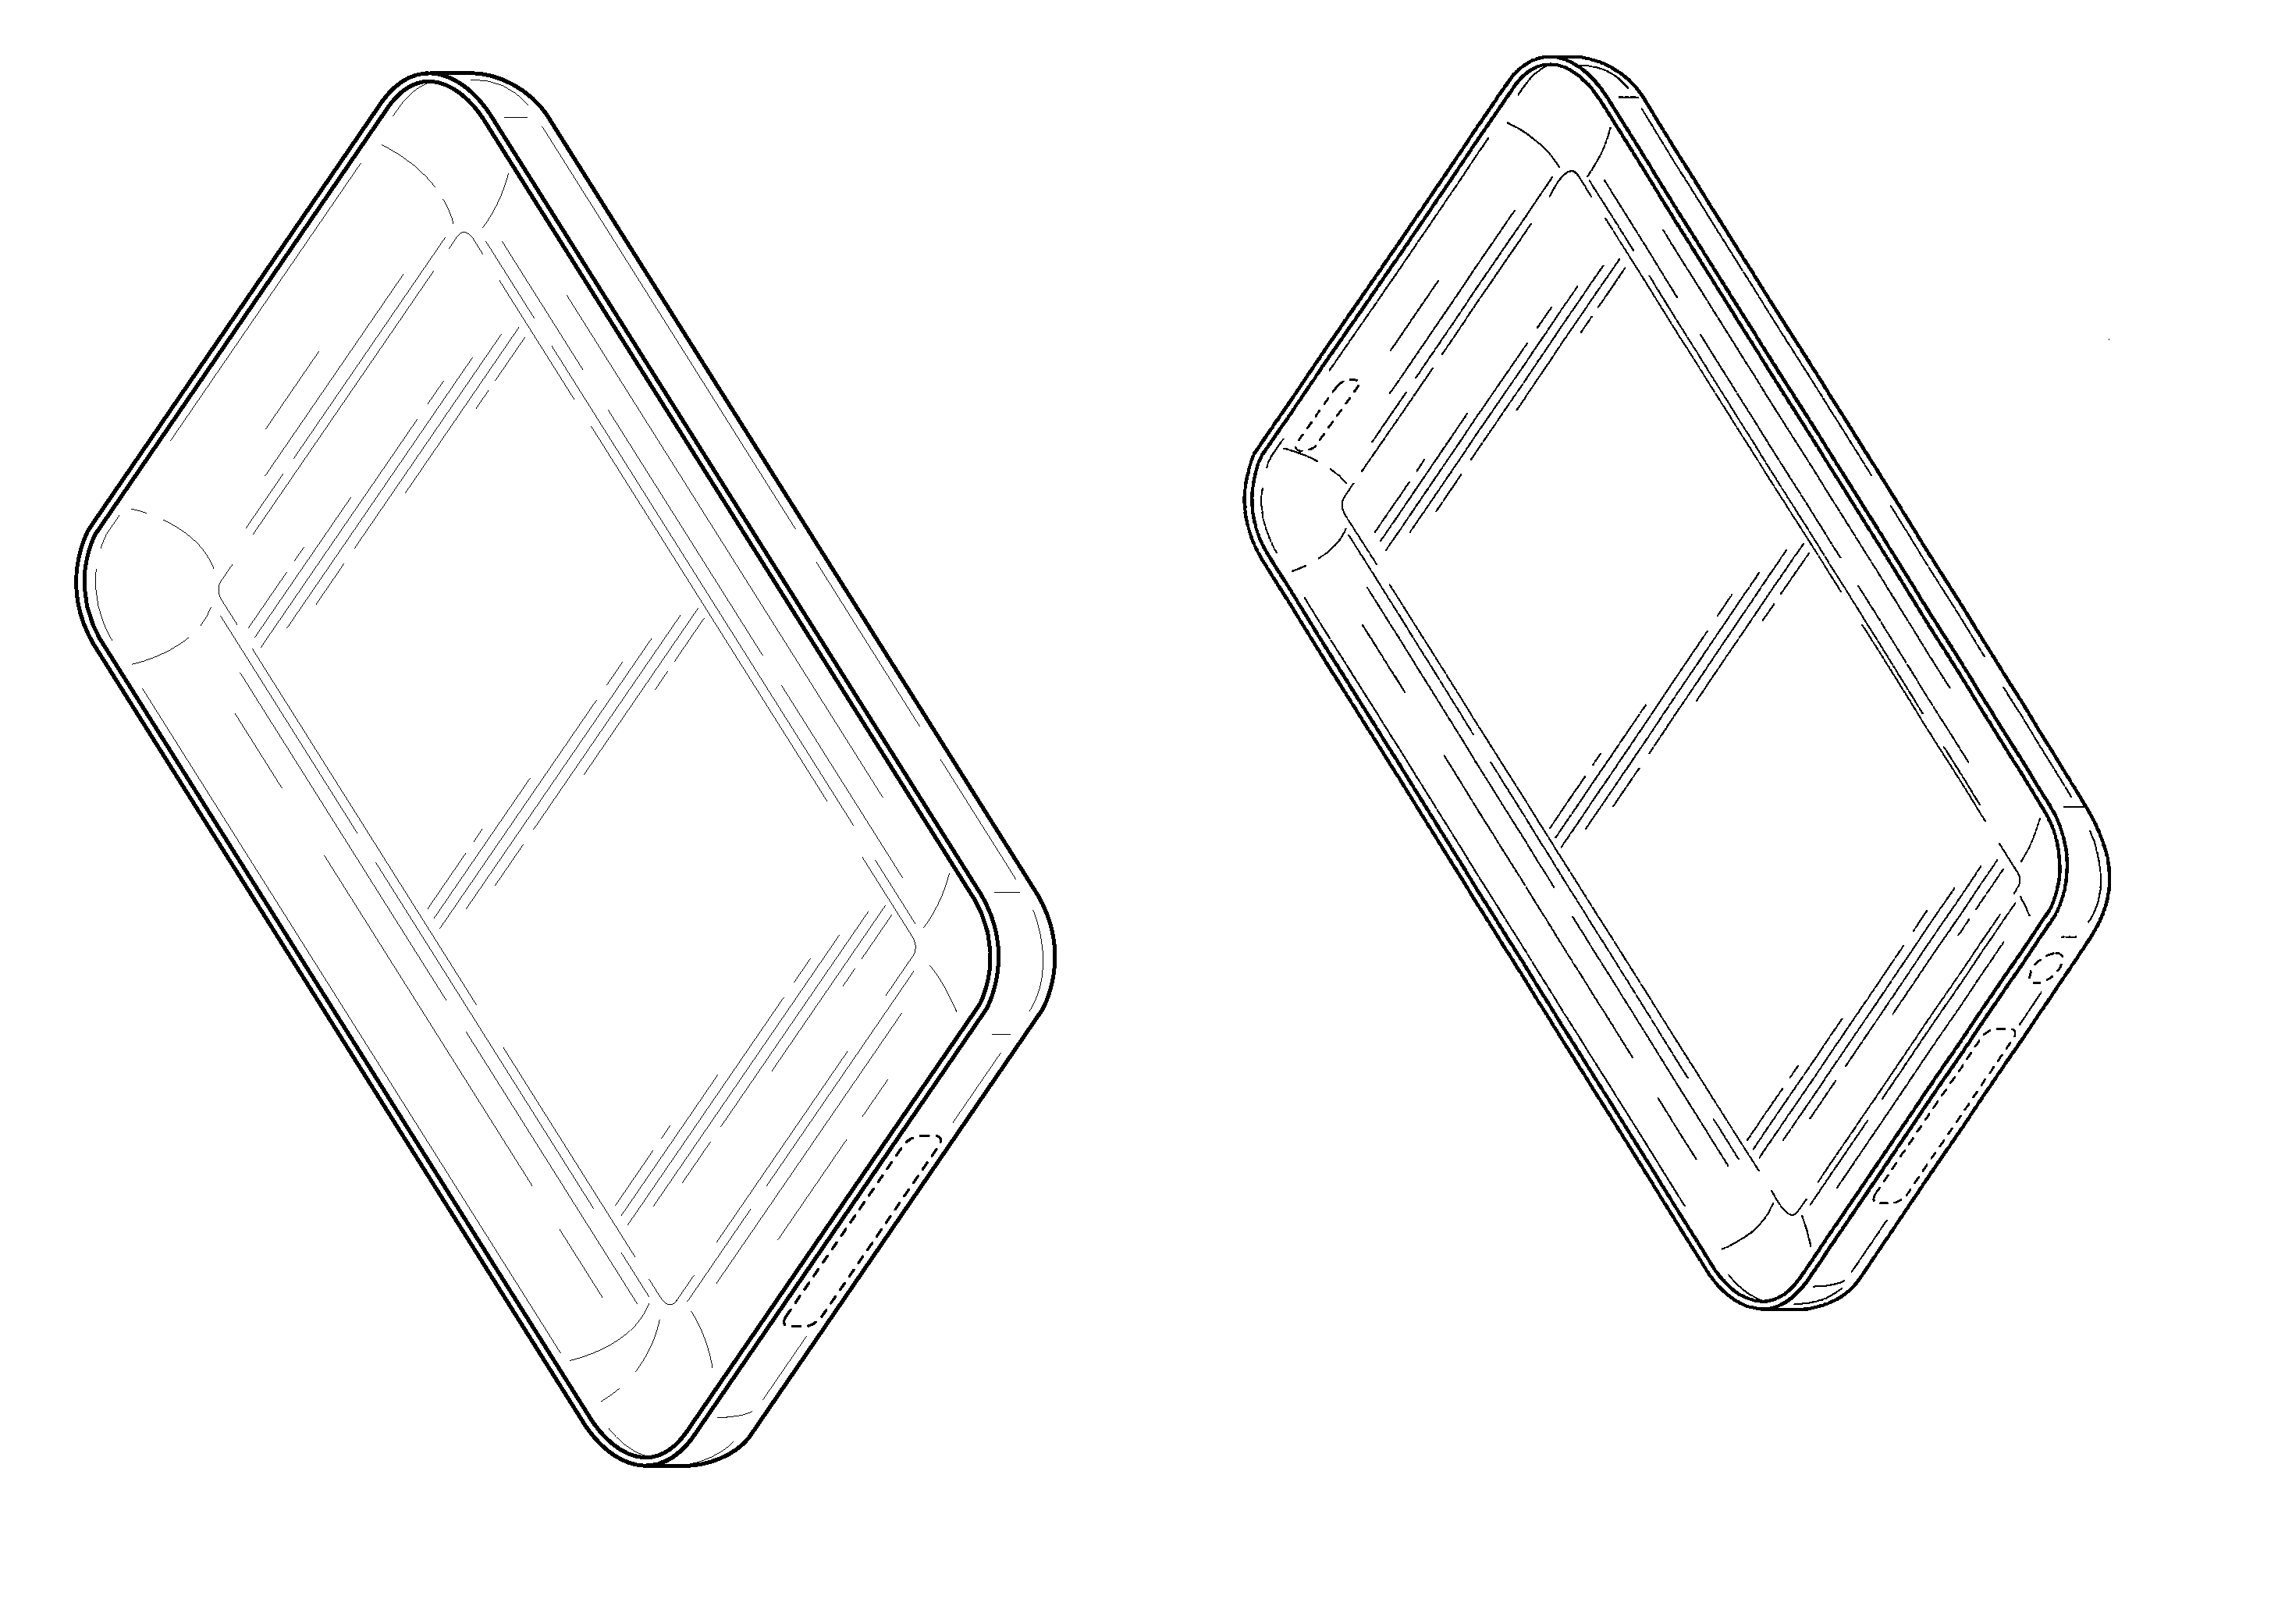 Apple  patent by Steve Jobs from 2010 for cover - USD619361